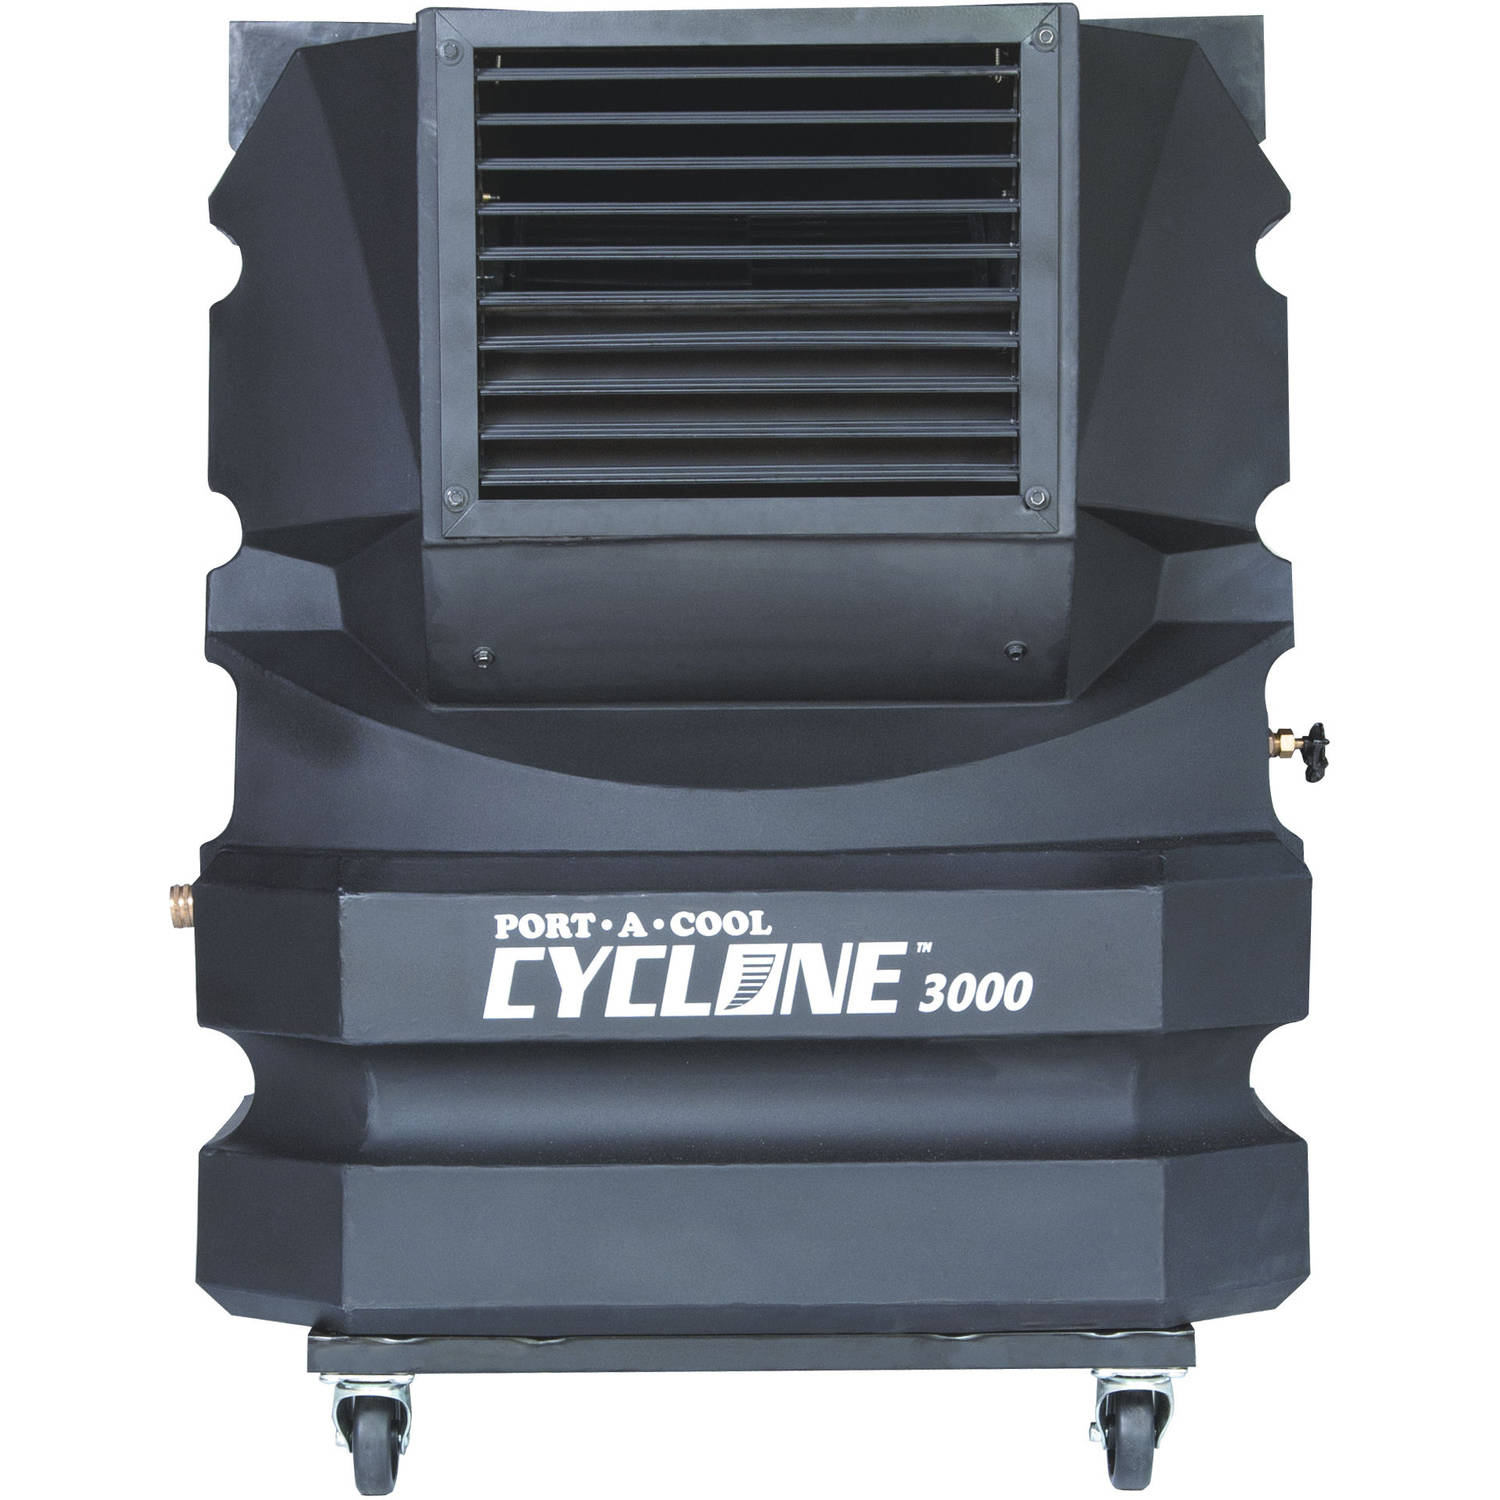 Port-A-Cool Cyclone 3000 Portable Evaporative Cooling Unit, Black